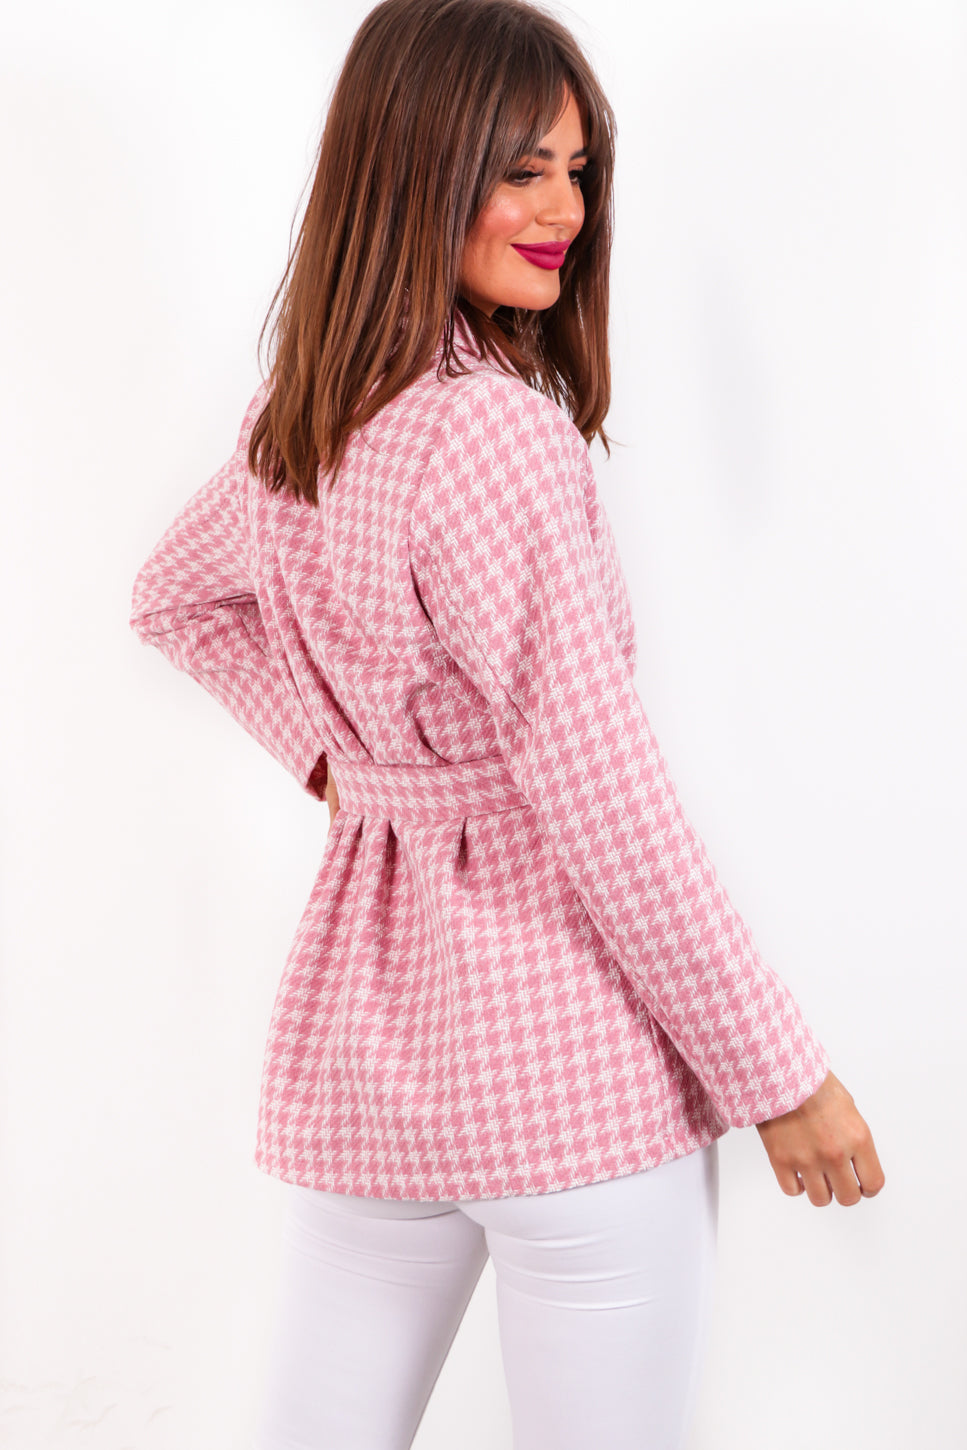 Simple But Smart - Pink Houndstooth Blazer